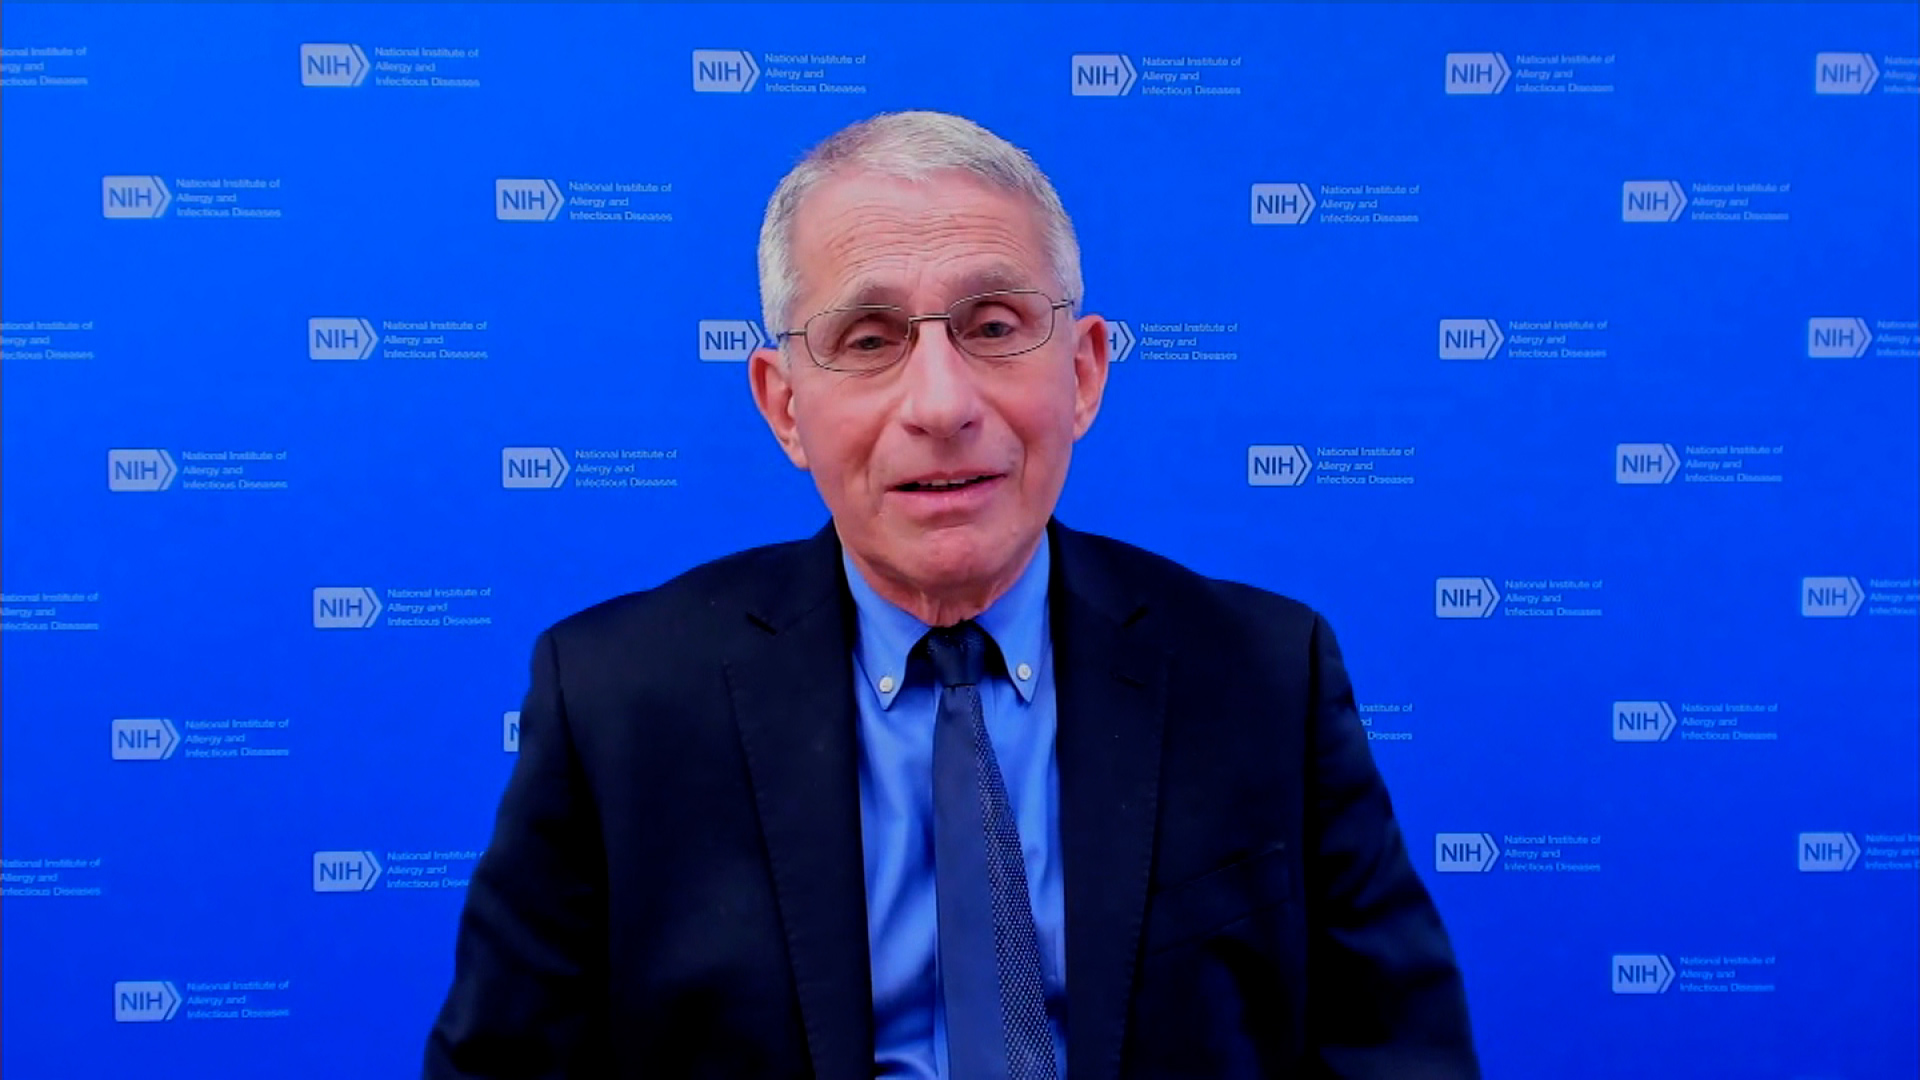 Dr. Anthony Fauci speaks during an interview on March 4.